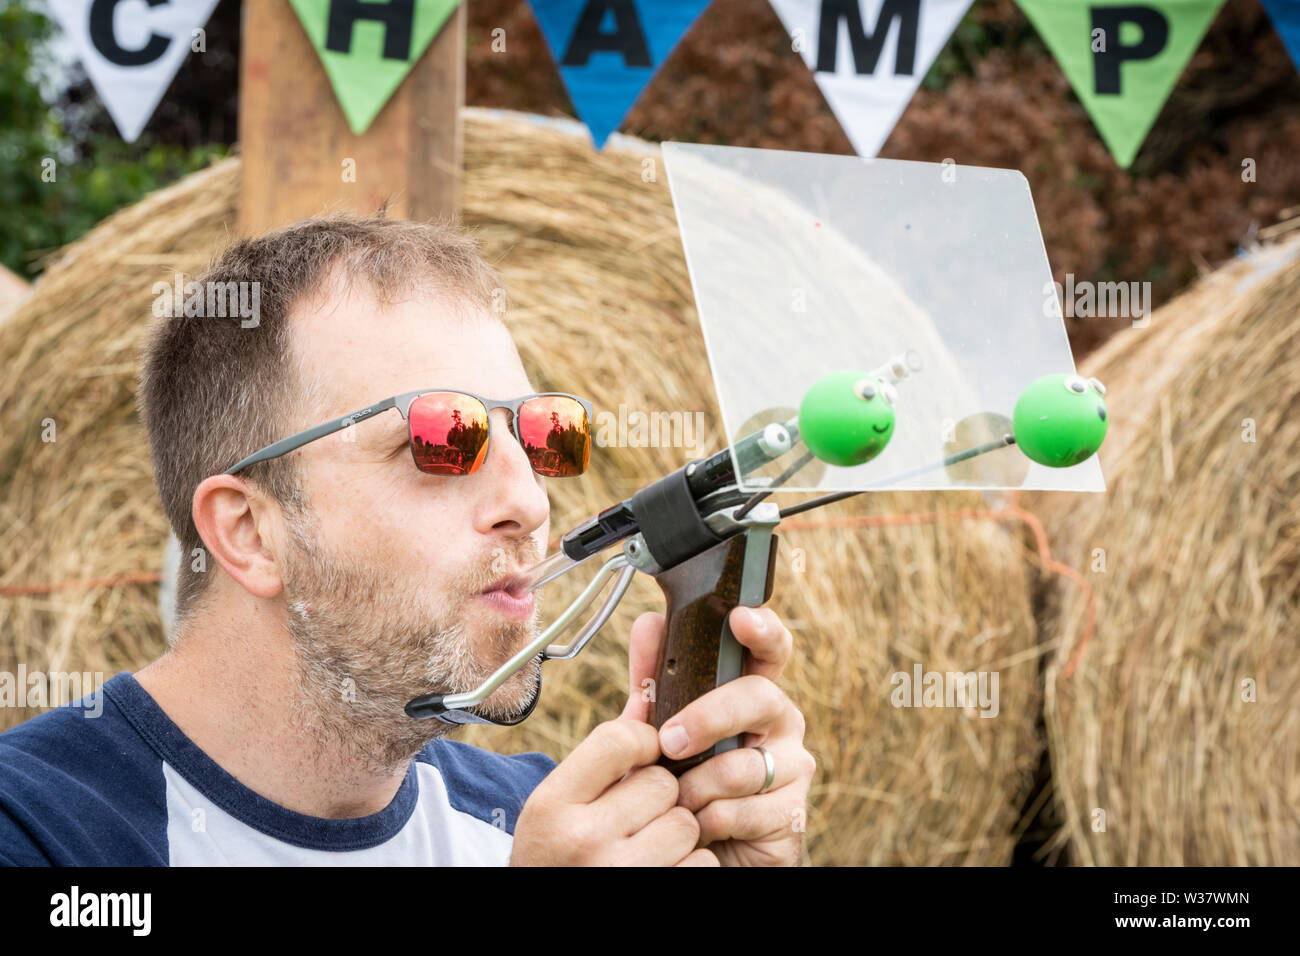 Witcham, near Ely, Cambridgeshire UK. 13th July 2019. Rob Bresler, a former champion, shoots at the 49th World Pea Shooting Championship. The annual event, held since 1971 raises funds for the village hall and attracts competitors who use a mixture of traditional tubes, counter-balanced and laser guided high-tech devices to shoot maple peas on to a putty target. Credit Julian Eales/Alamy Live News - Stock Image